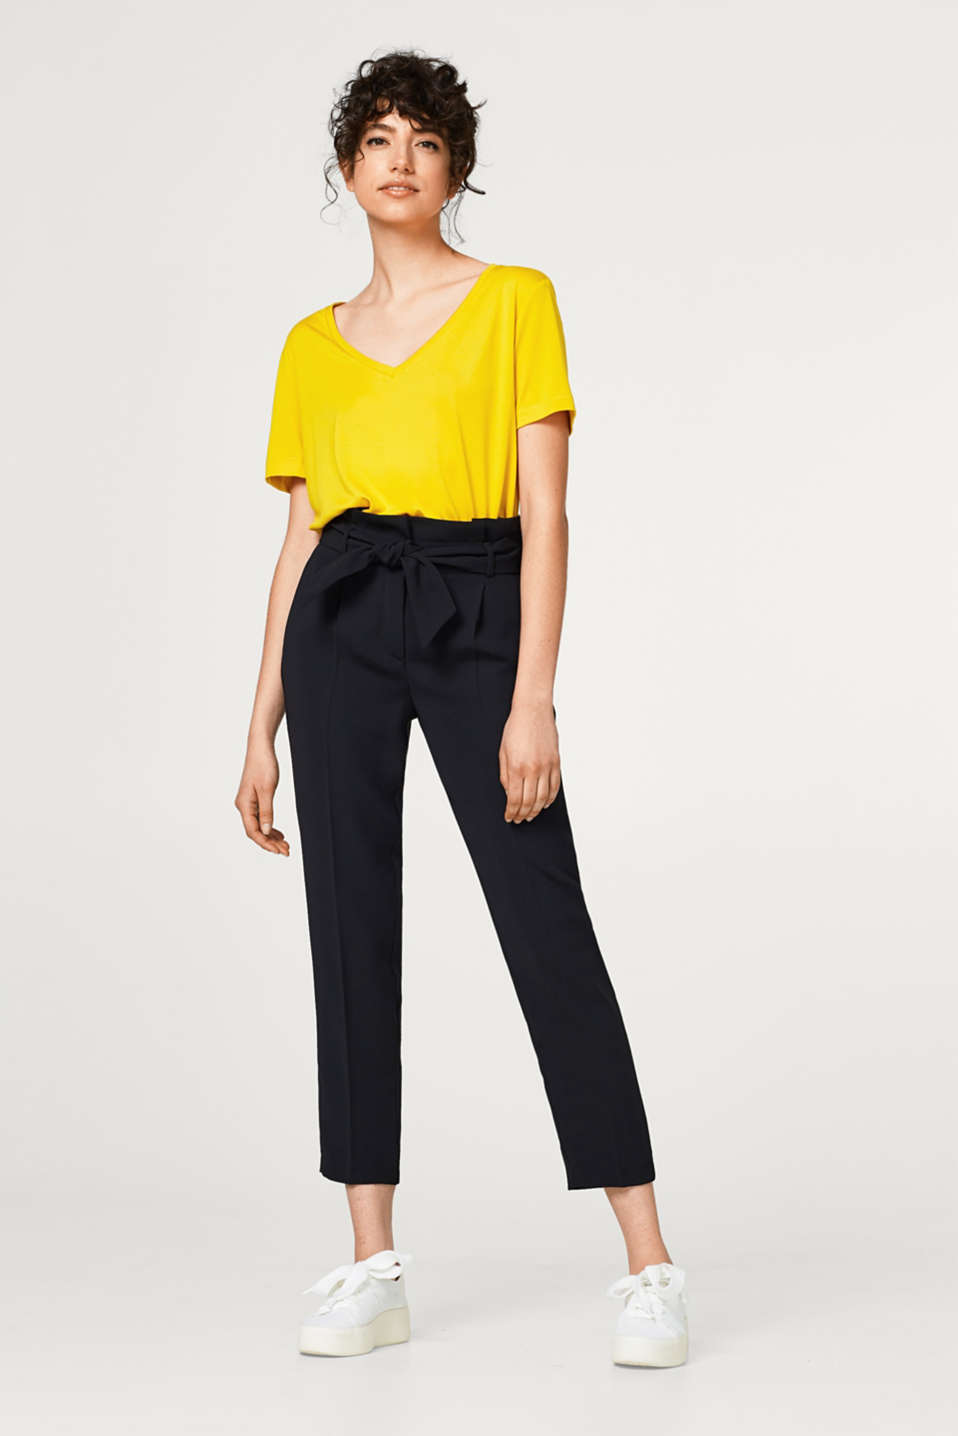 Esprit - Flowing trousers with a high paperbag waistband